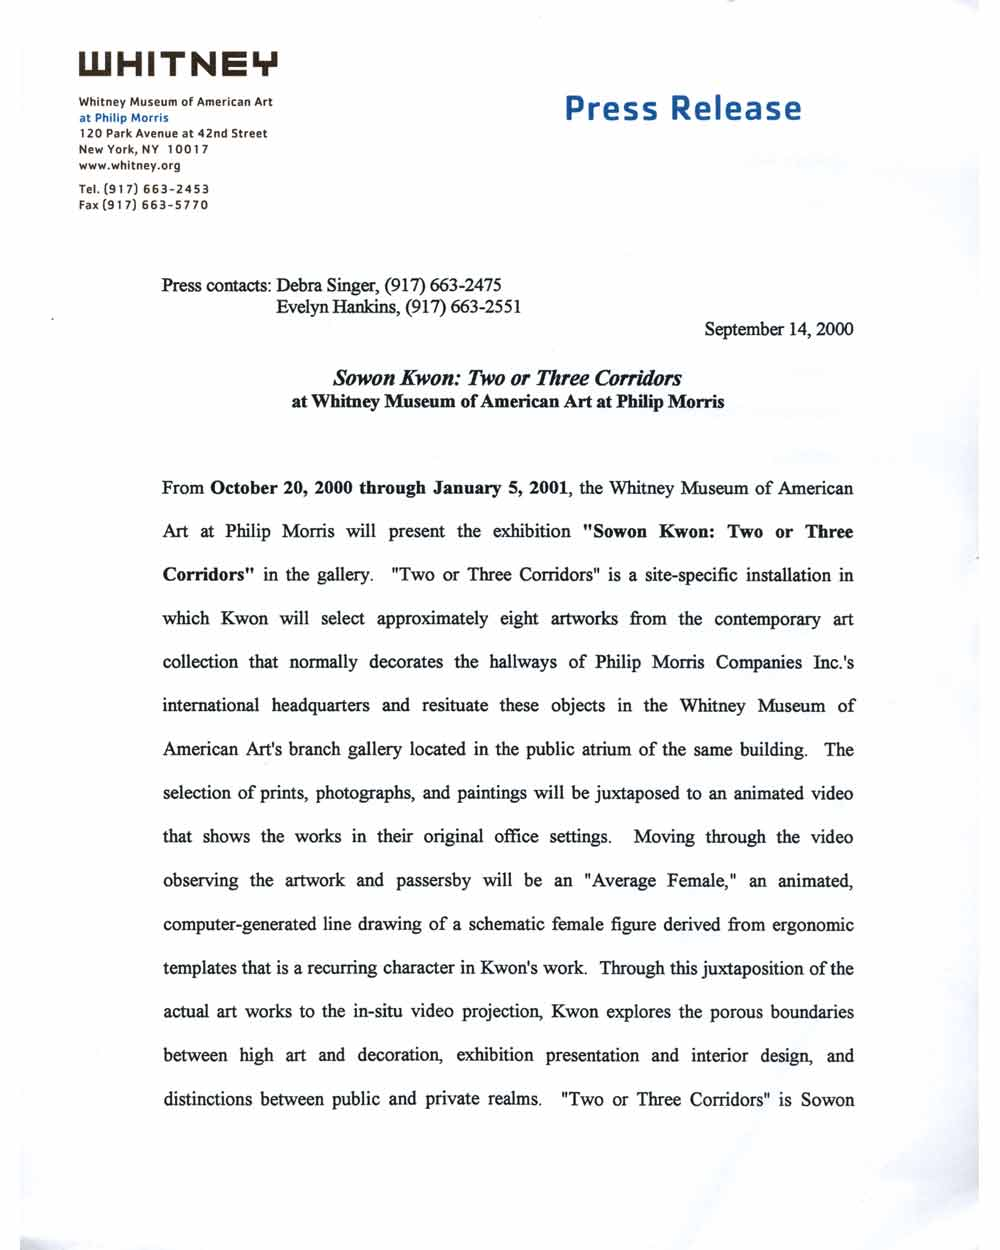 Sowon Kwon: Two or Three Corridors, press release, pg 1